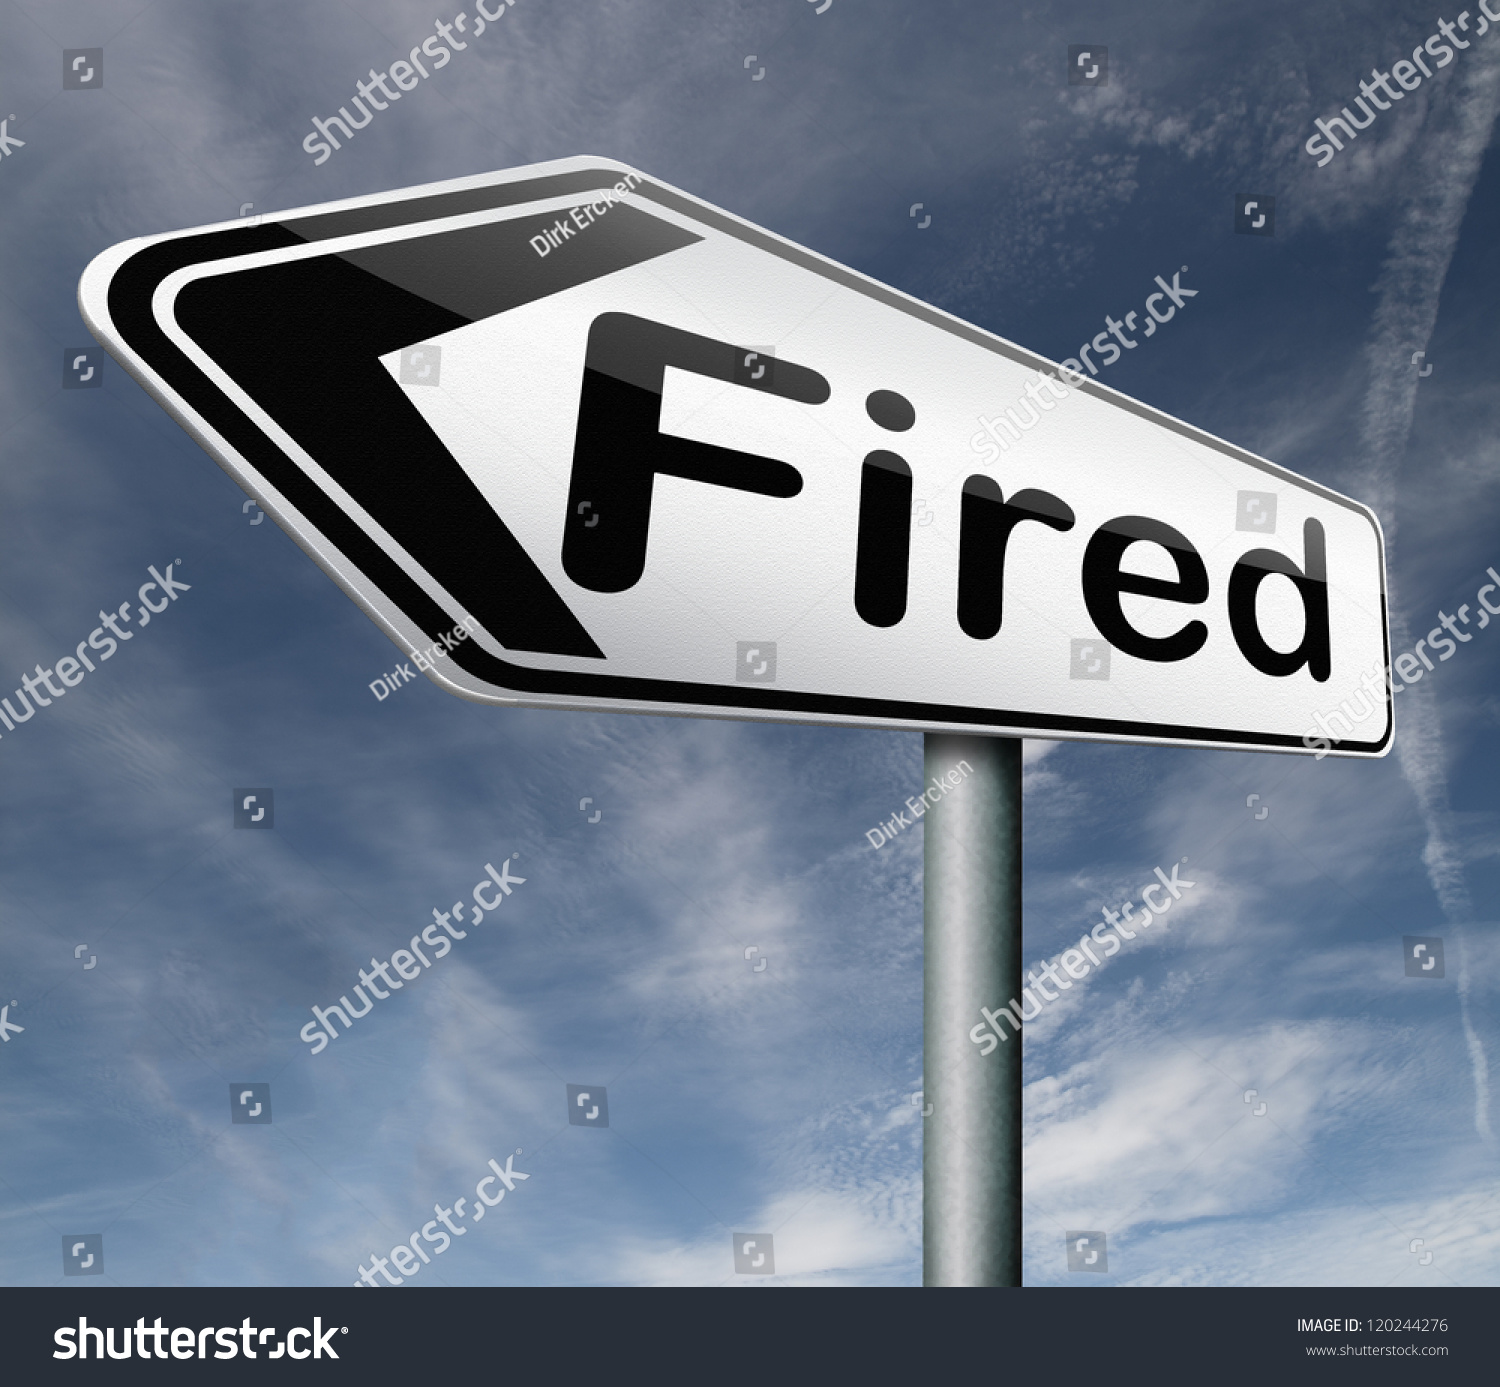 fired getting fired loose your job stock illustration  fired getting fired loose your job you re fired loss work jobless